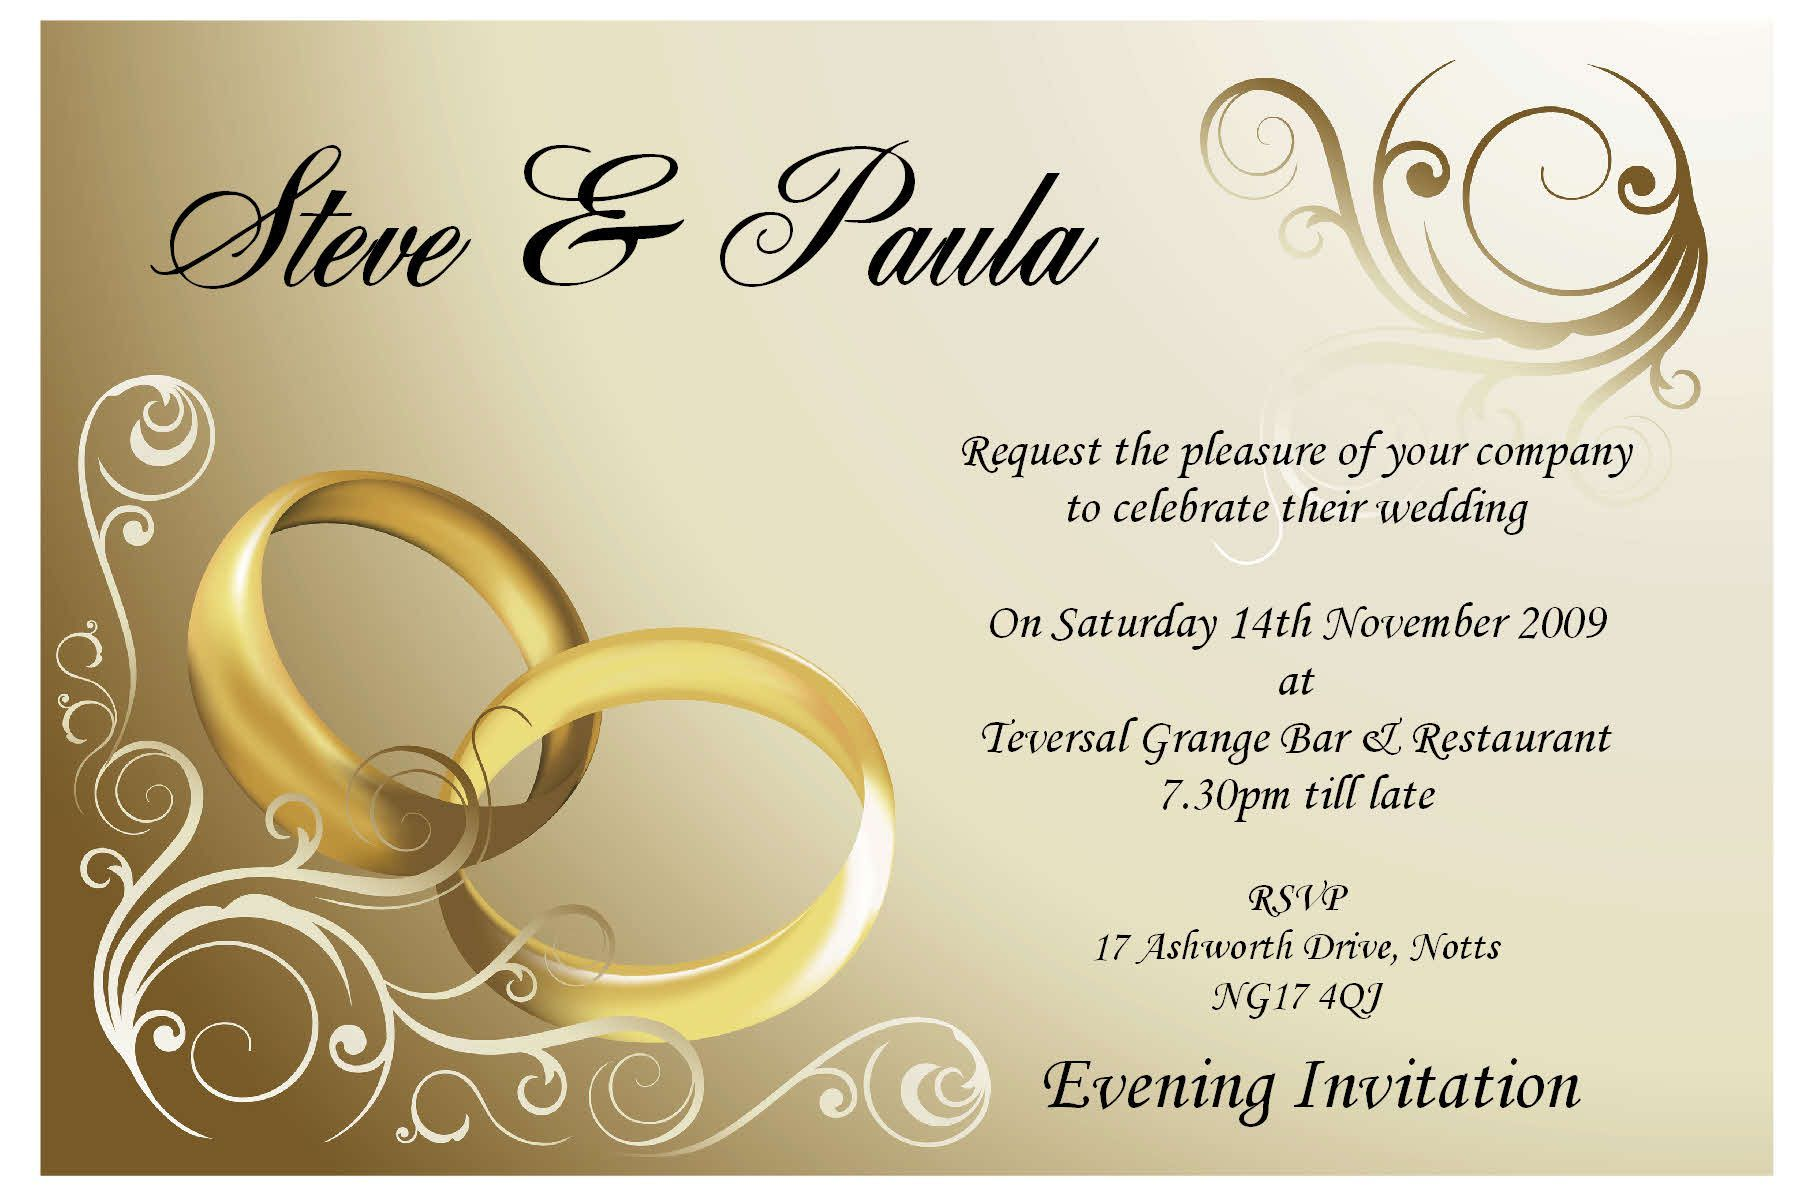 wedding invitation card design online free  Engagement invitation